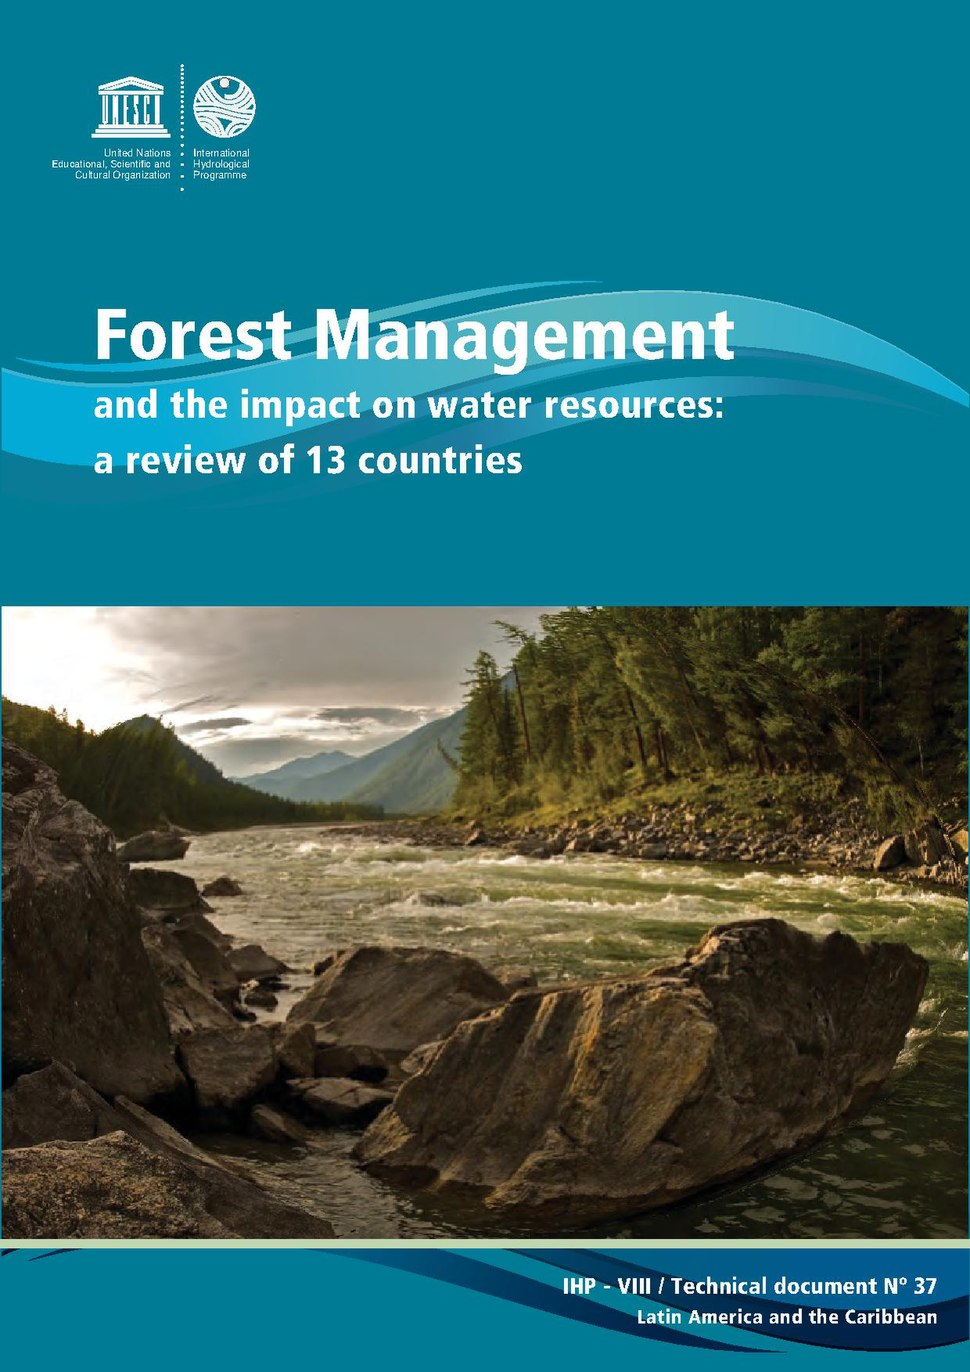 Forest Management and the impact on water resources a review of 13 countries.pdf